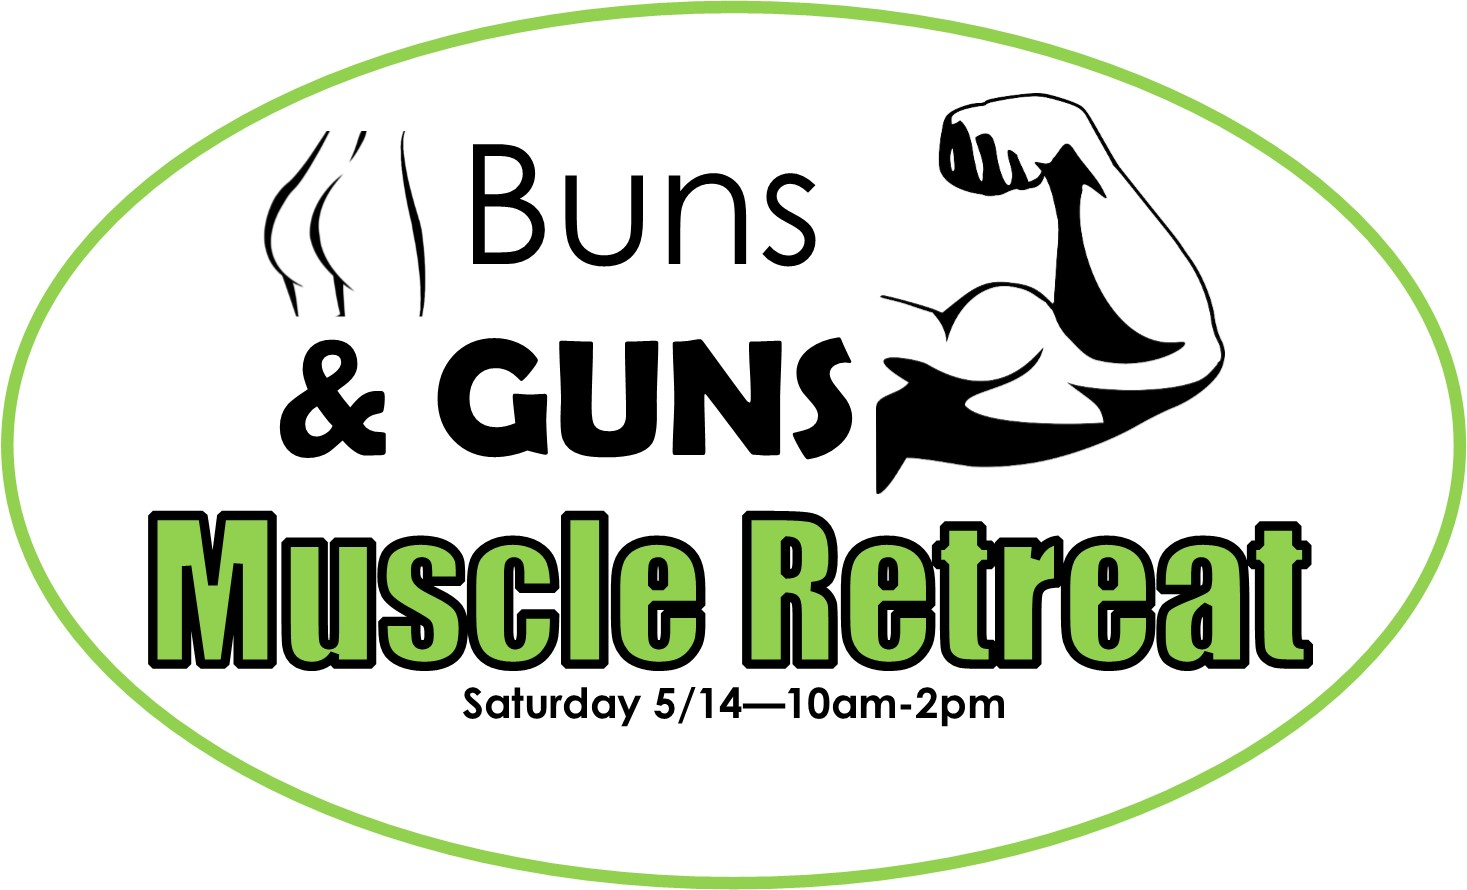 Buns and Guns muscle retreat work out logo